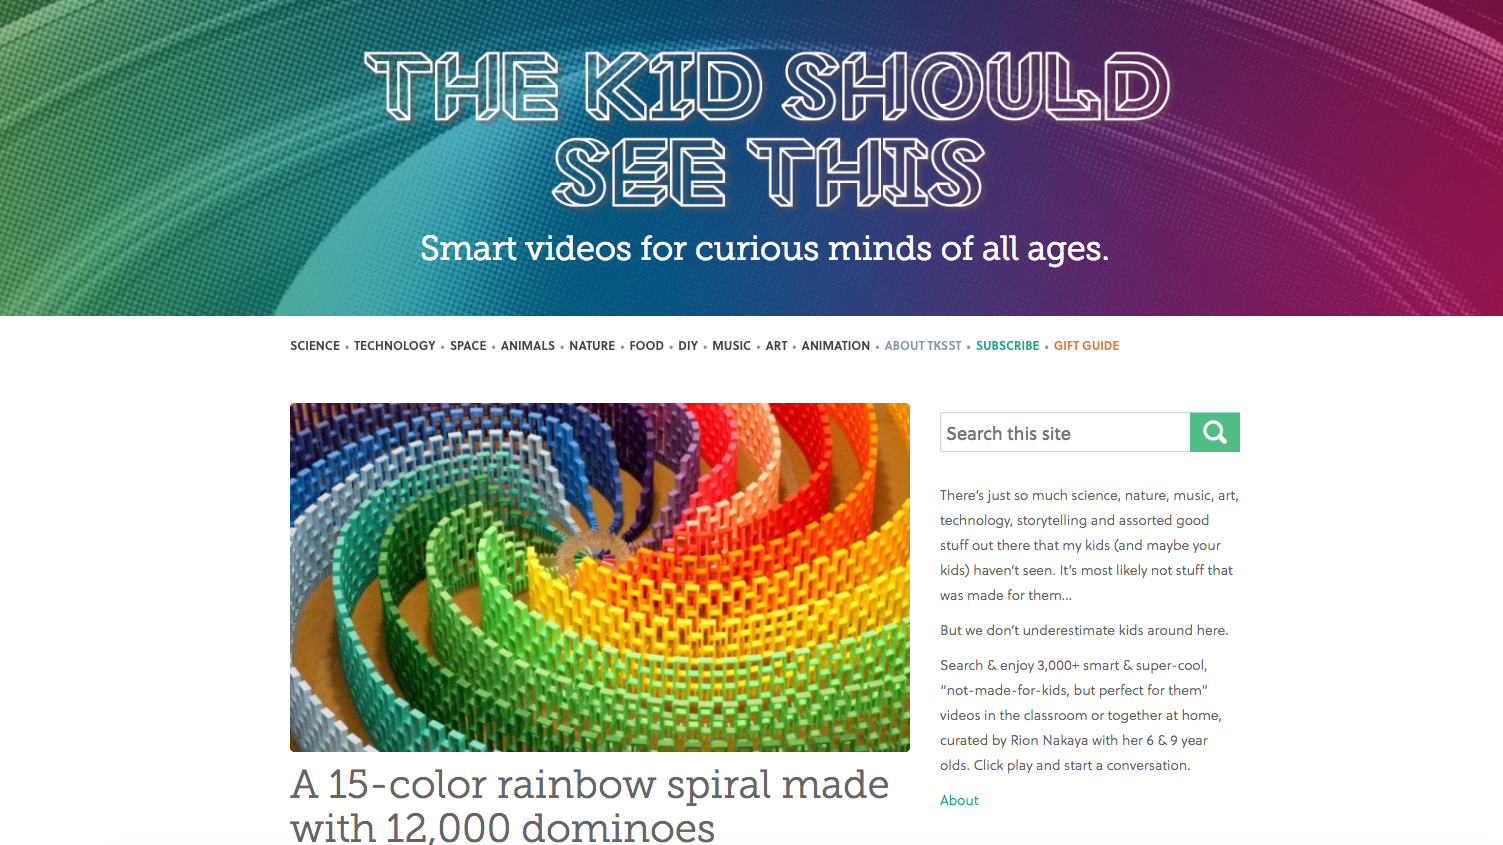 Use This Website As Your Antidote To The Mind-Numbing Kids' Videos On The Internet